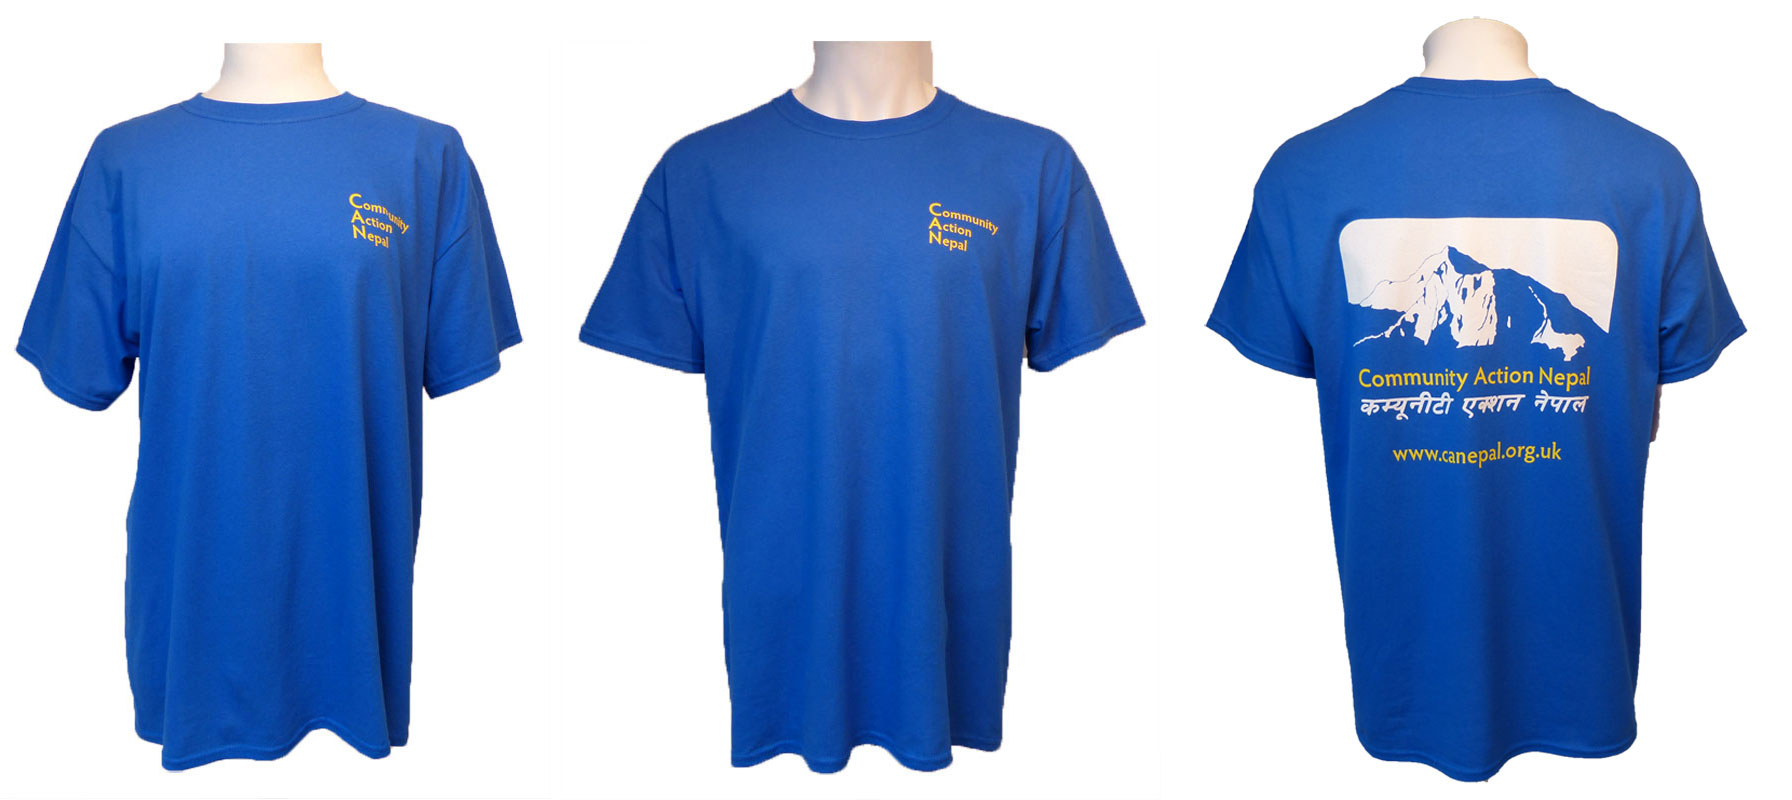 CAN T-shirts available in four sizes - small, medium, large and extra-large. Cost  £8.00 plus £3.50 p&p